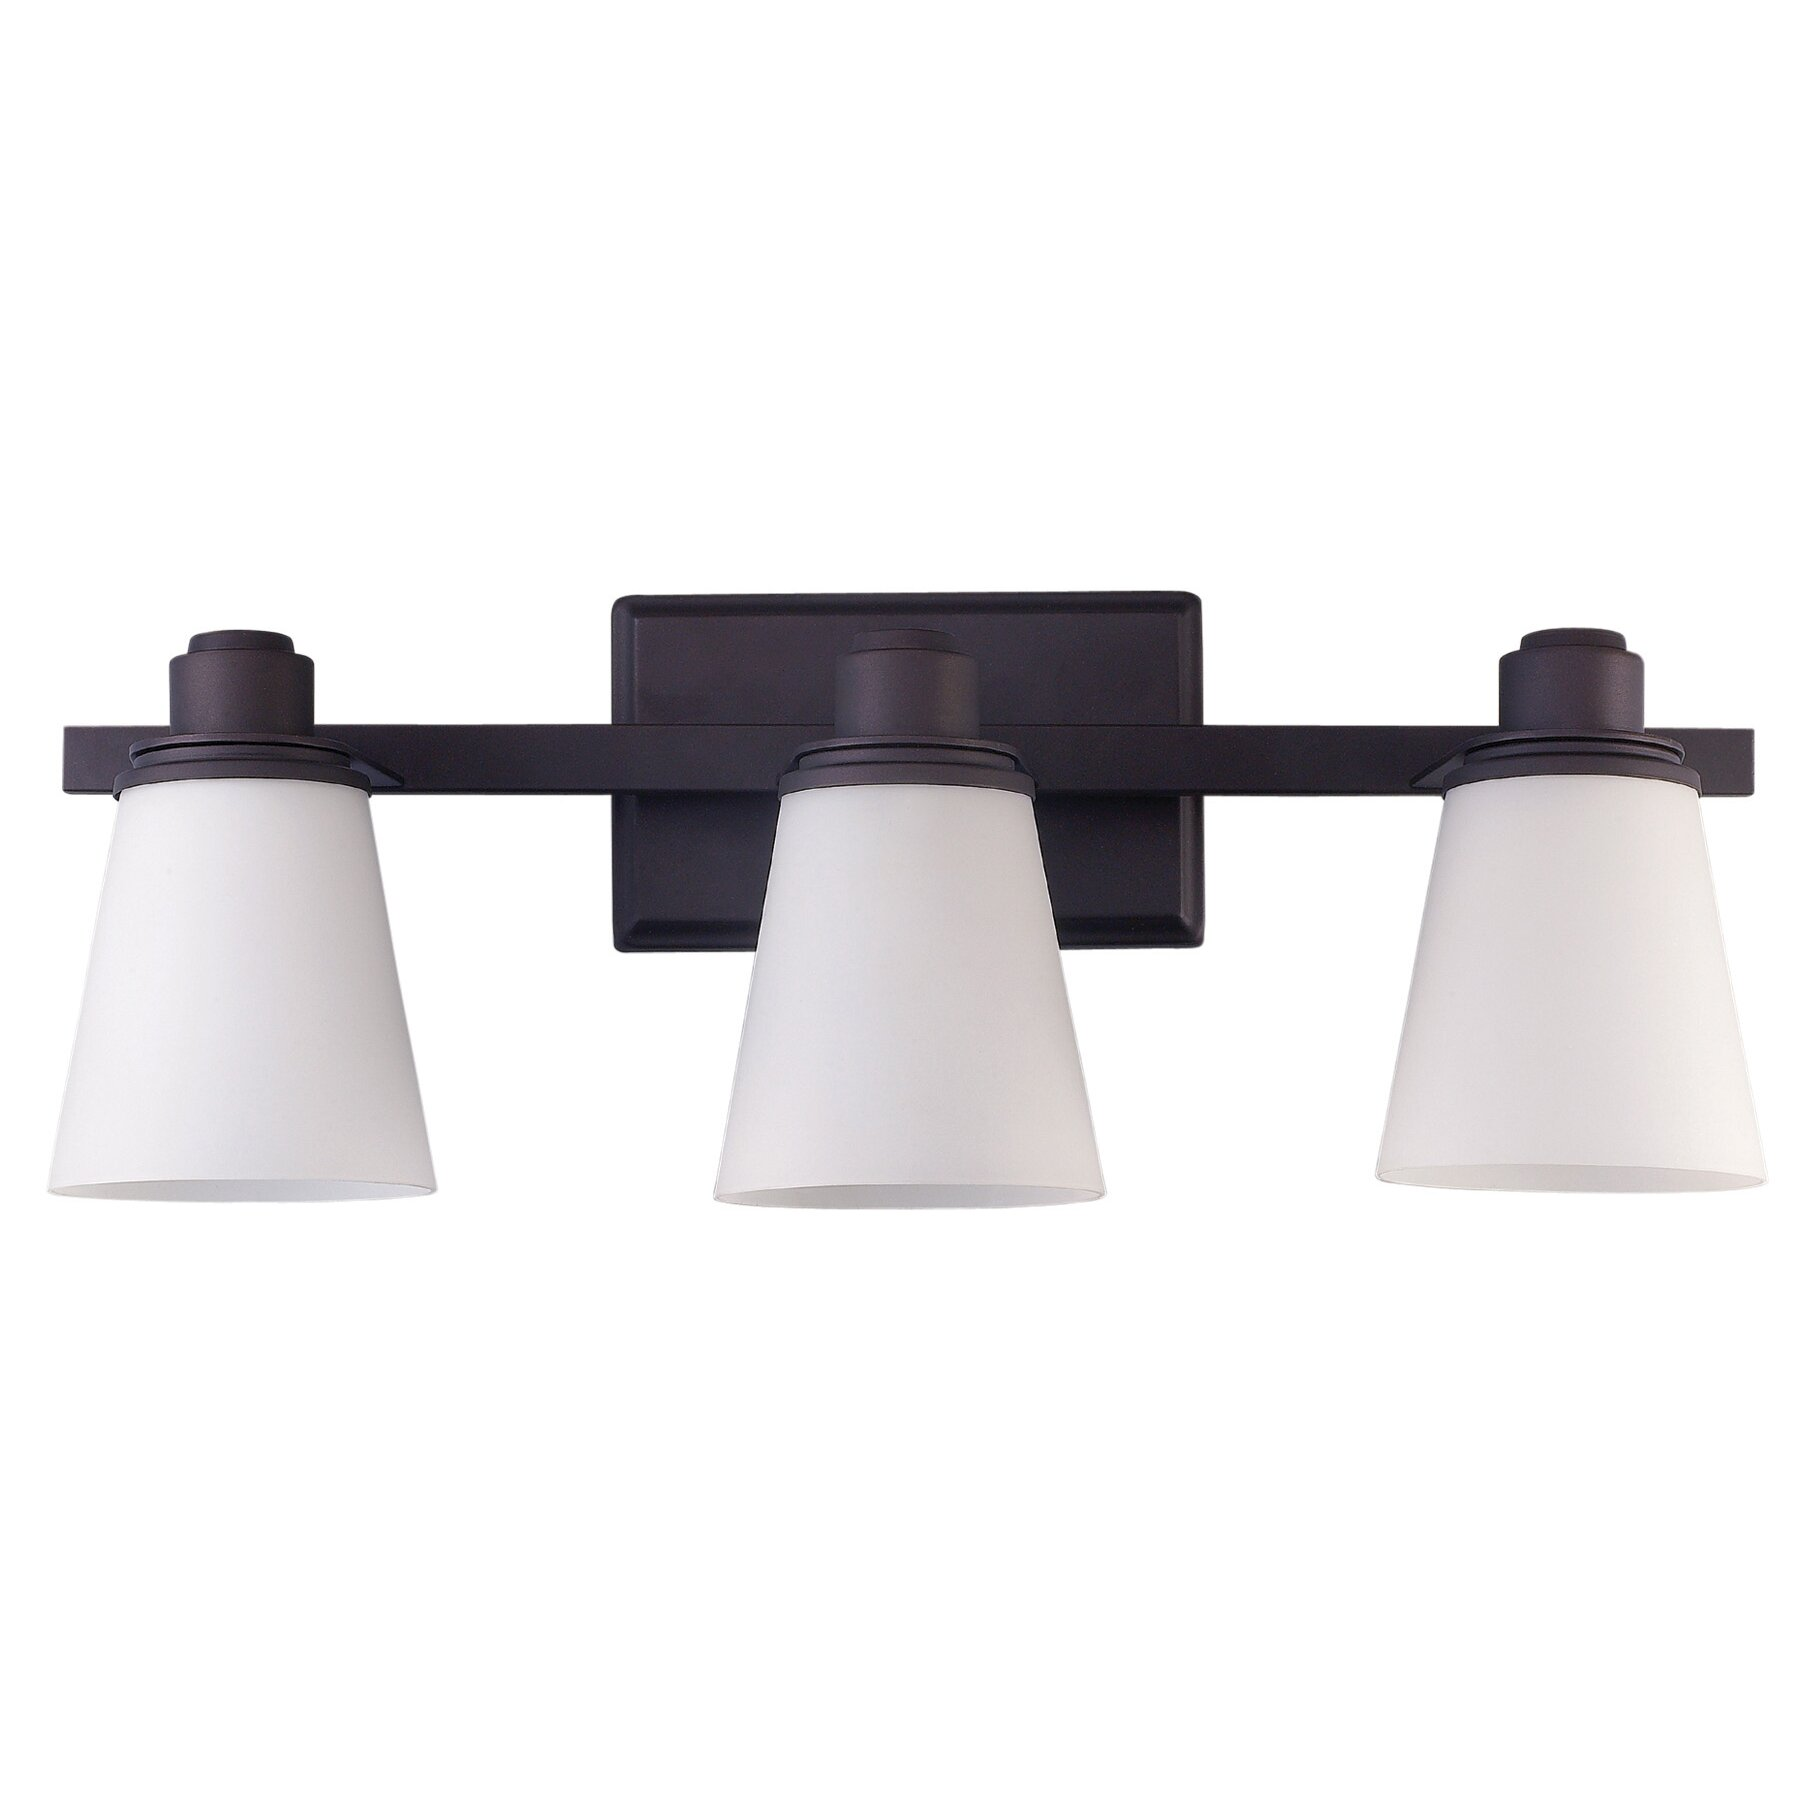 Varick Gallery Mehara 3 Light Bath Vanity Light & Reviews